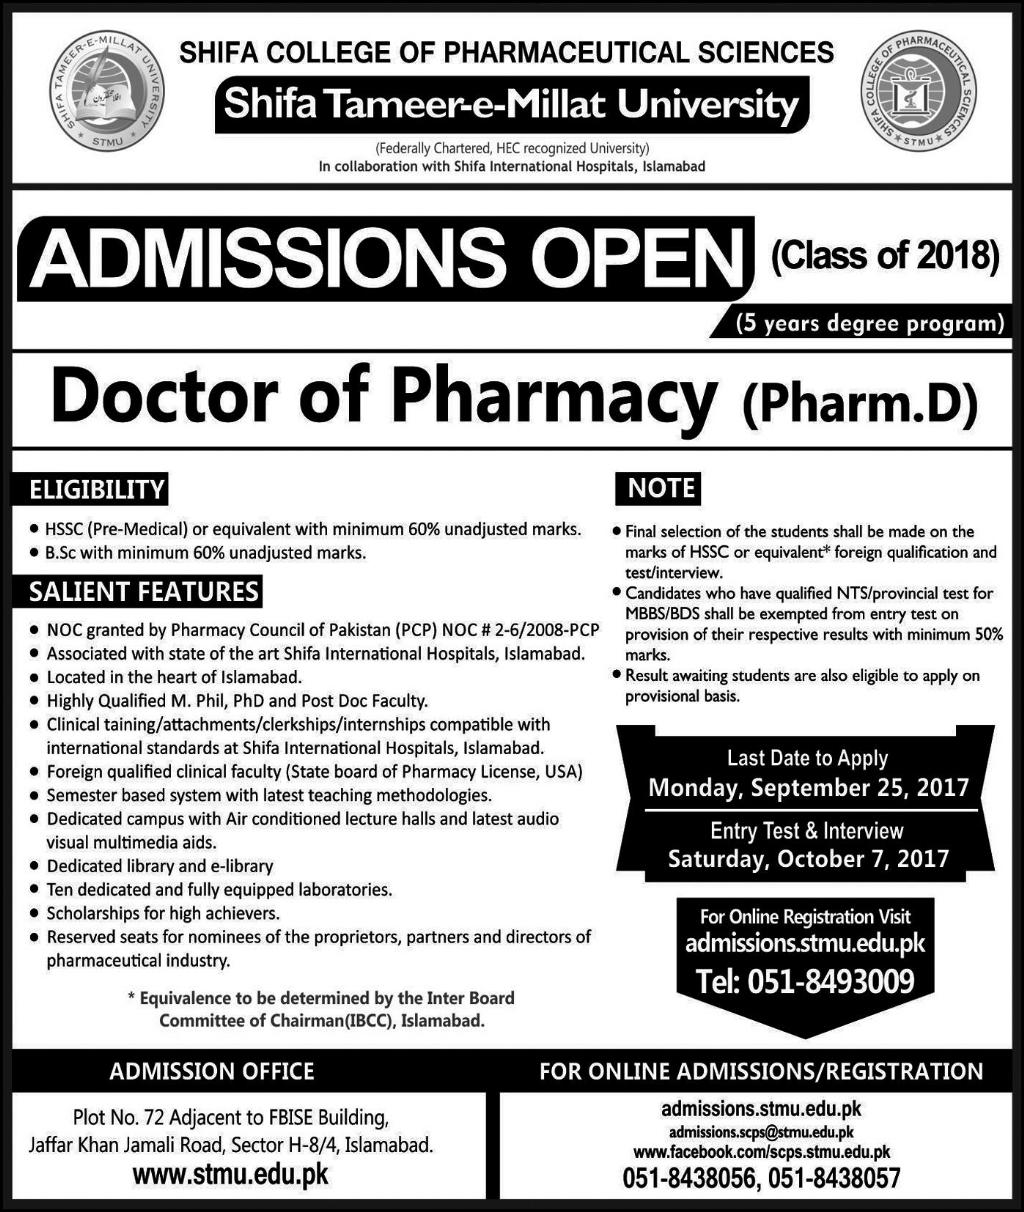 Admissions Open in Shifa Tameer-E-Millat University (Stmu) Islamabad - 2017